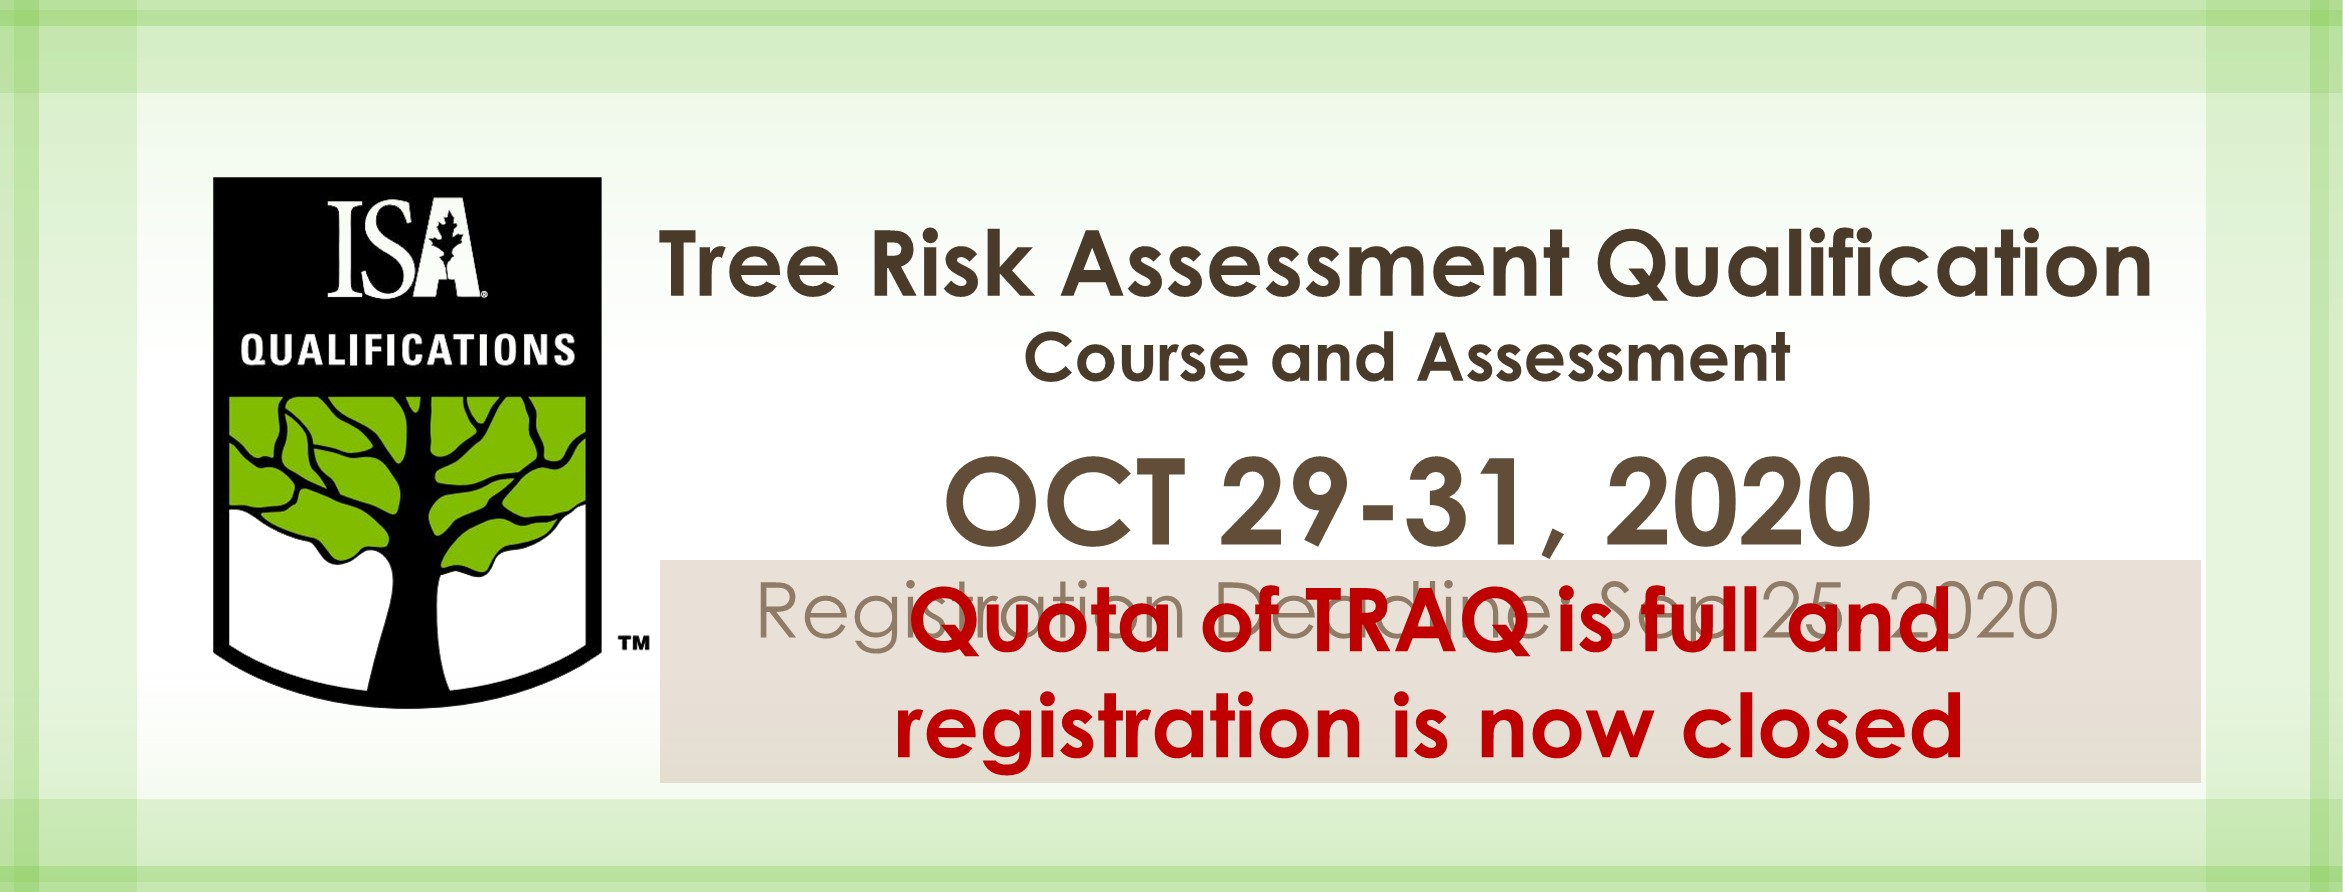 Tree Risk Assessment Qualification course and assessment at Oct 29-31